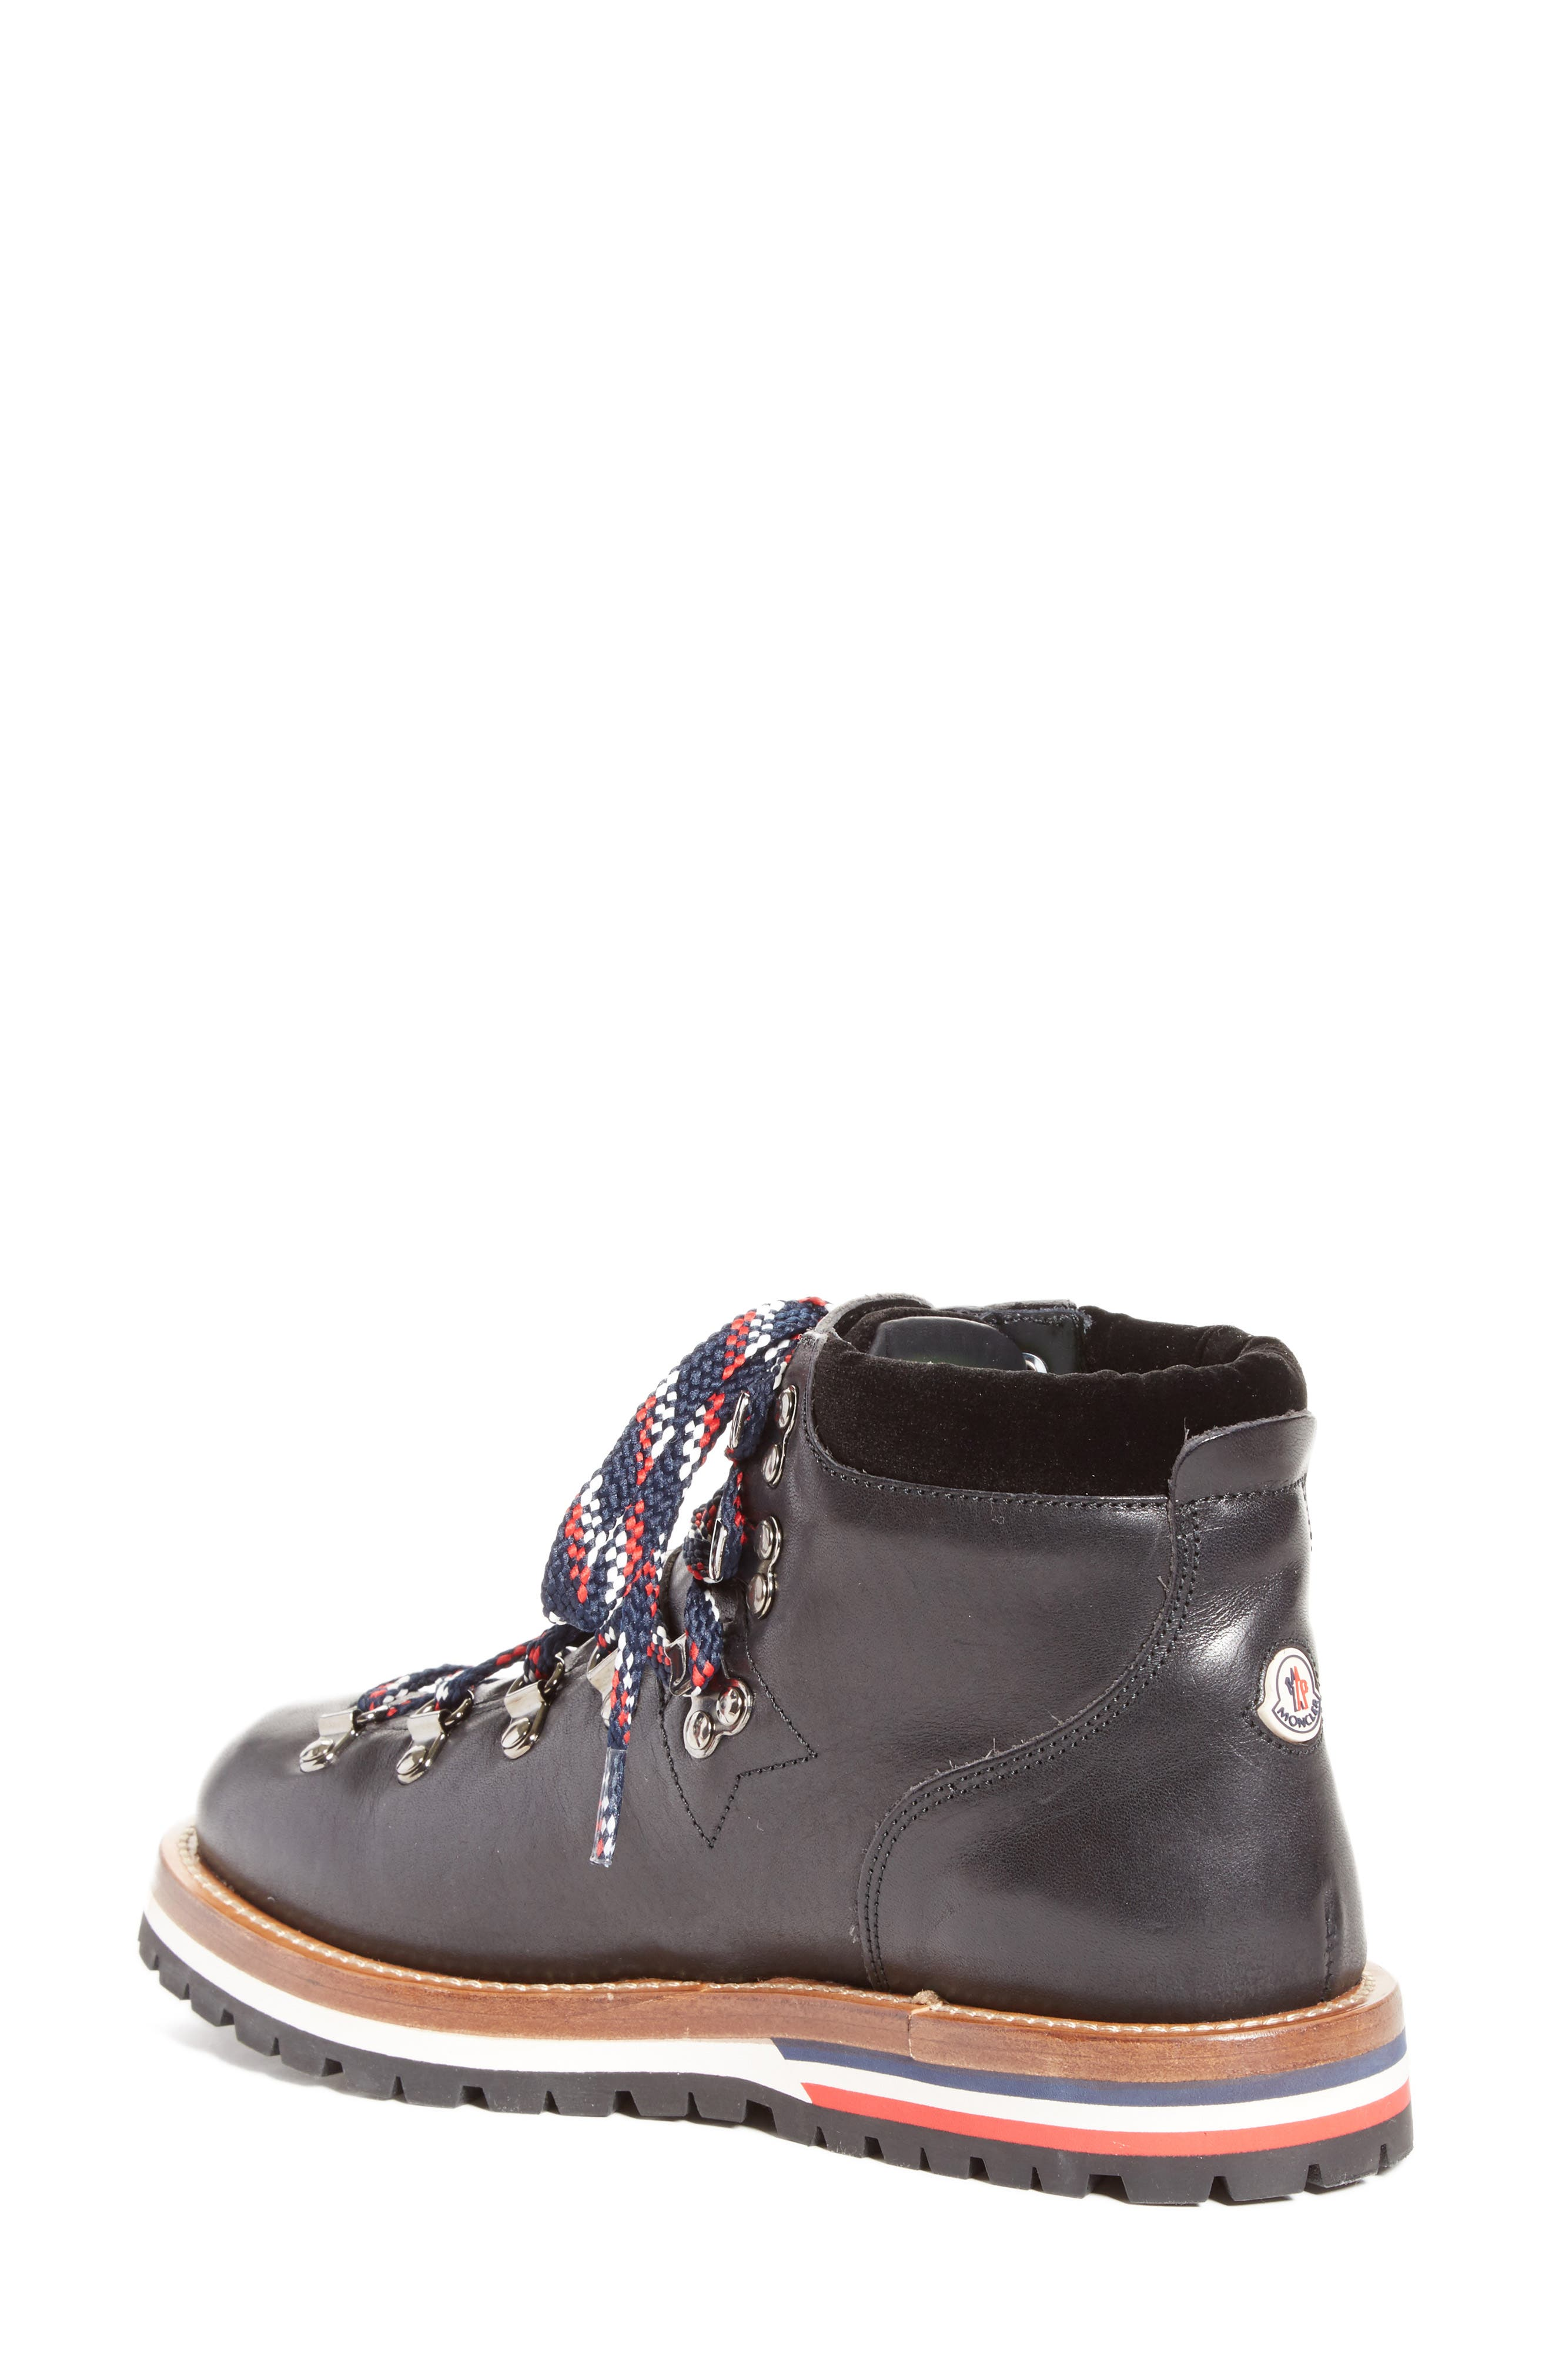 Alternate Image 2  - Moncler Blanche Lace-up Boot (Women)